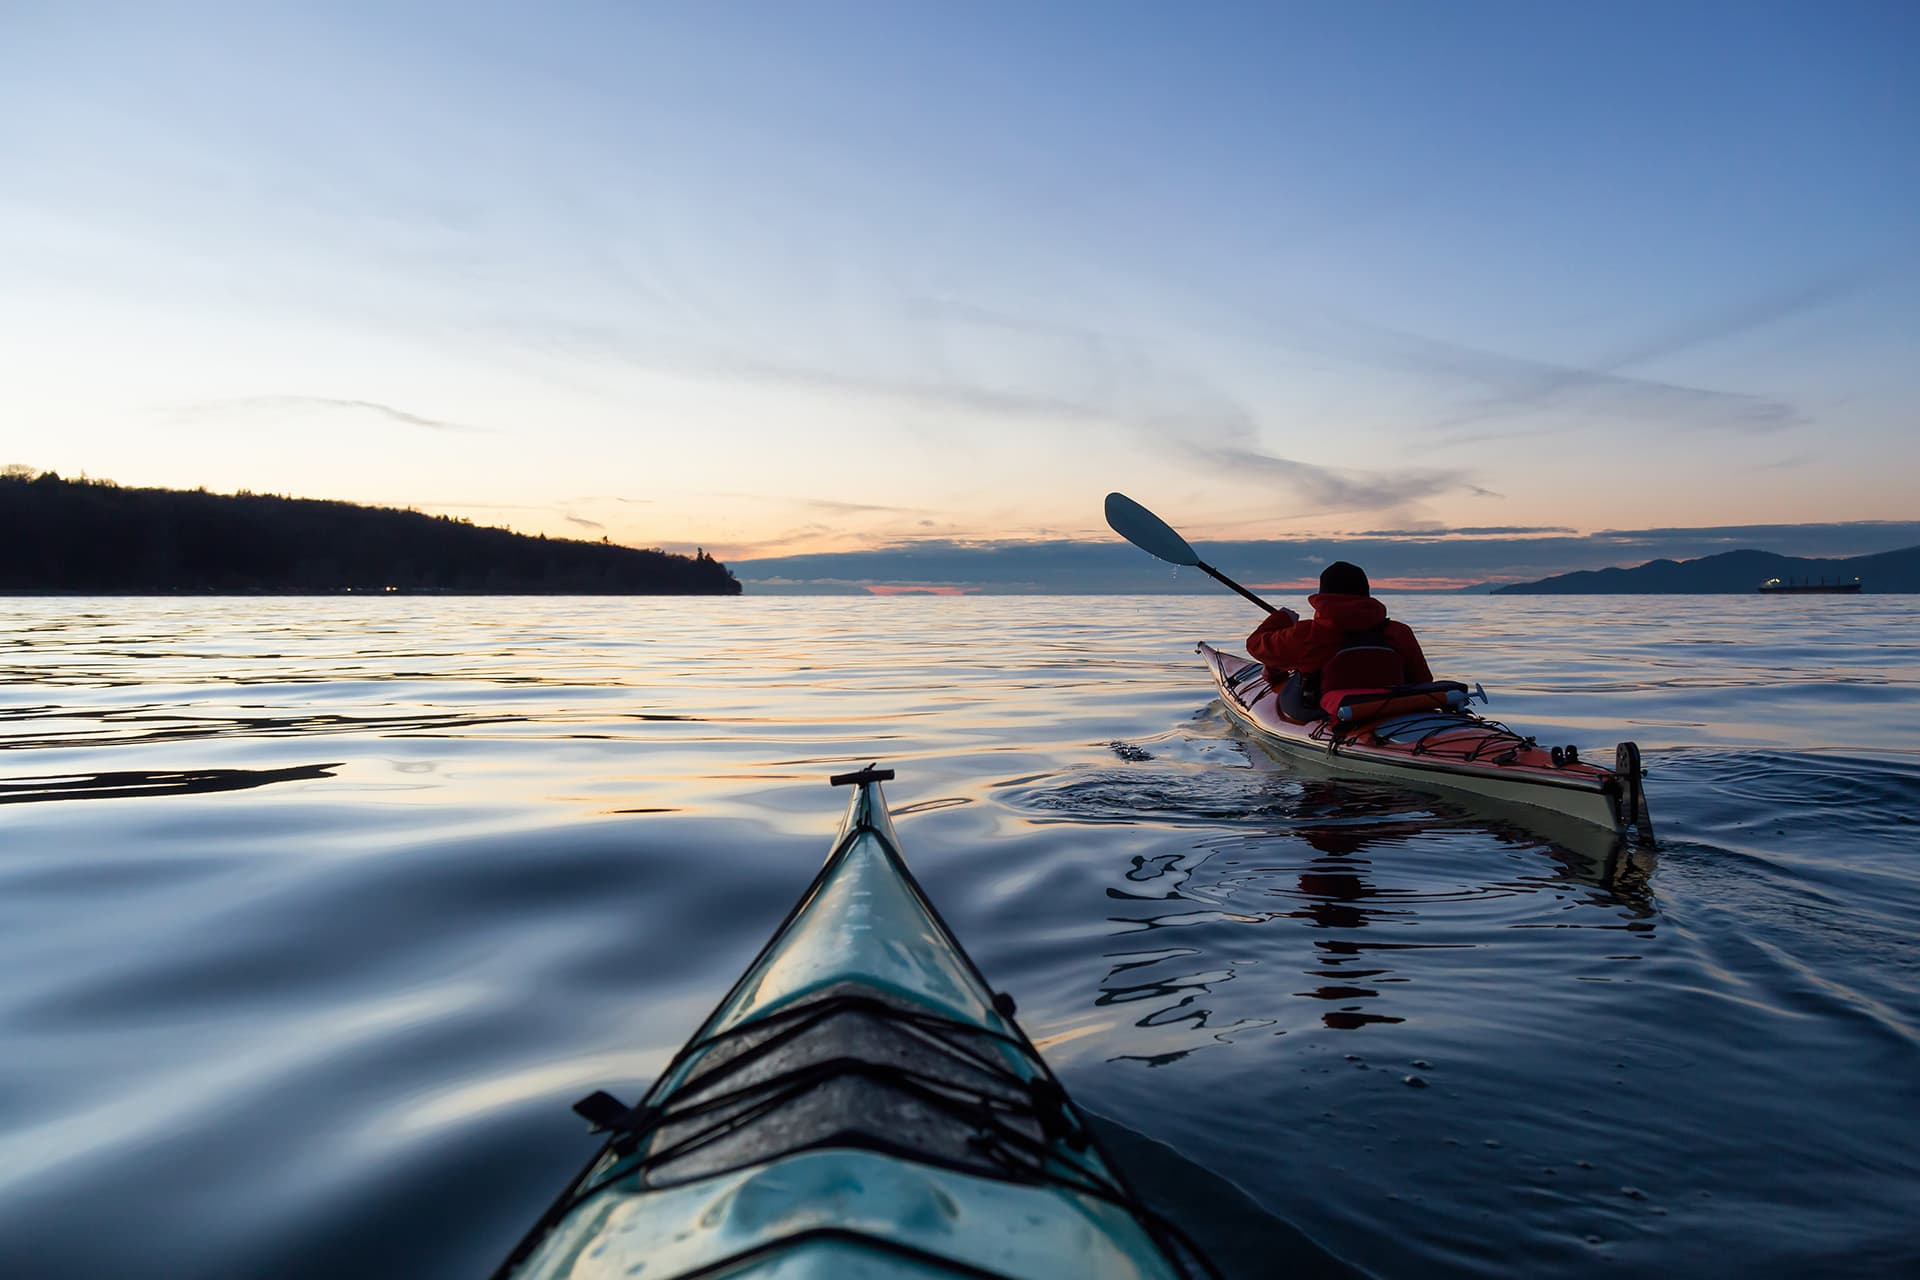 Two people kayaking on water with Canada visitor insurance